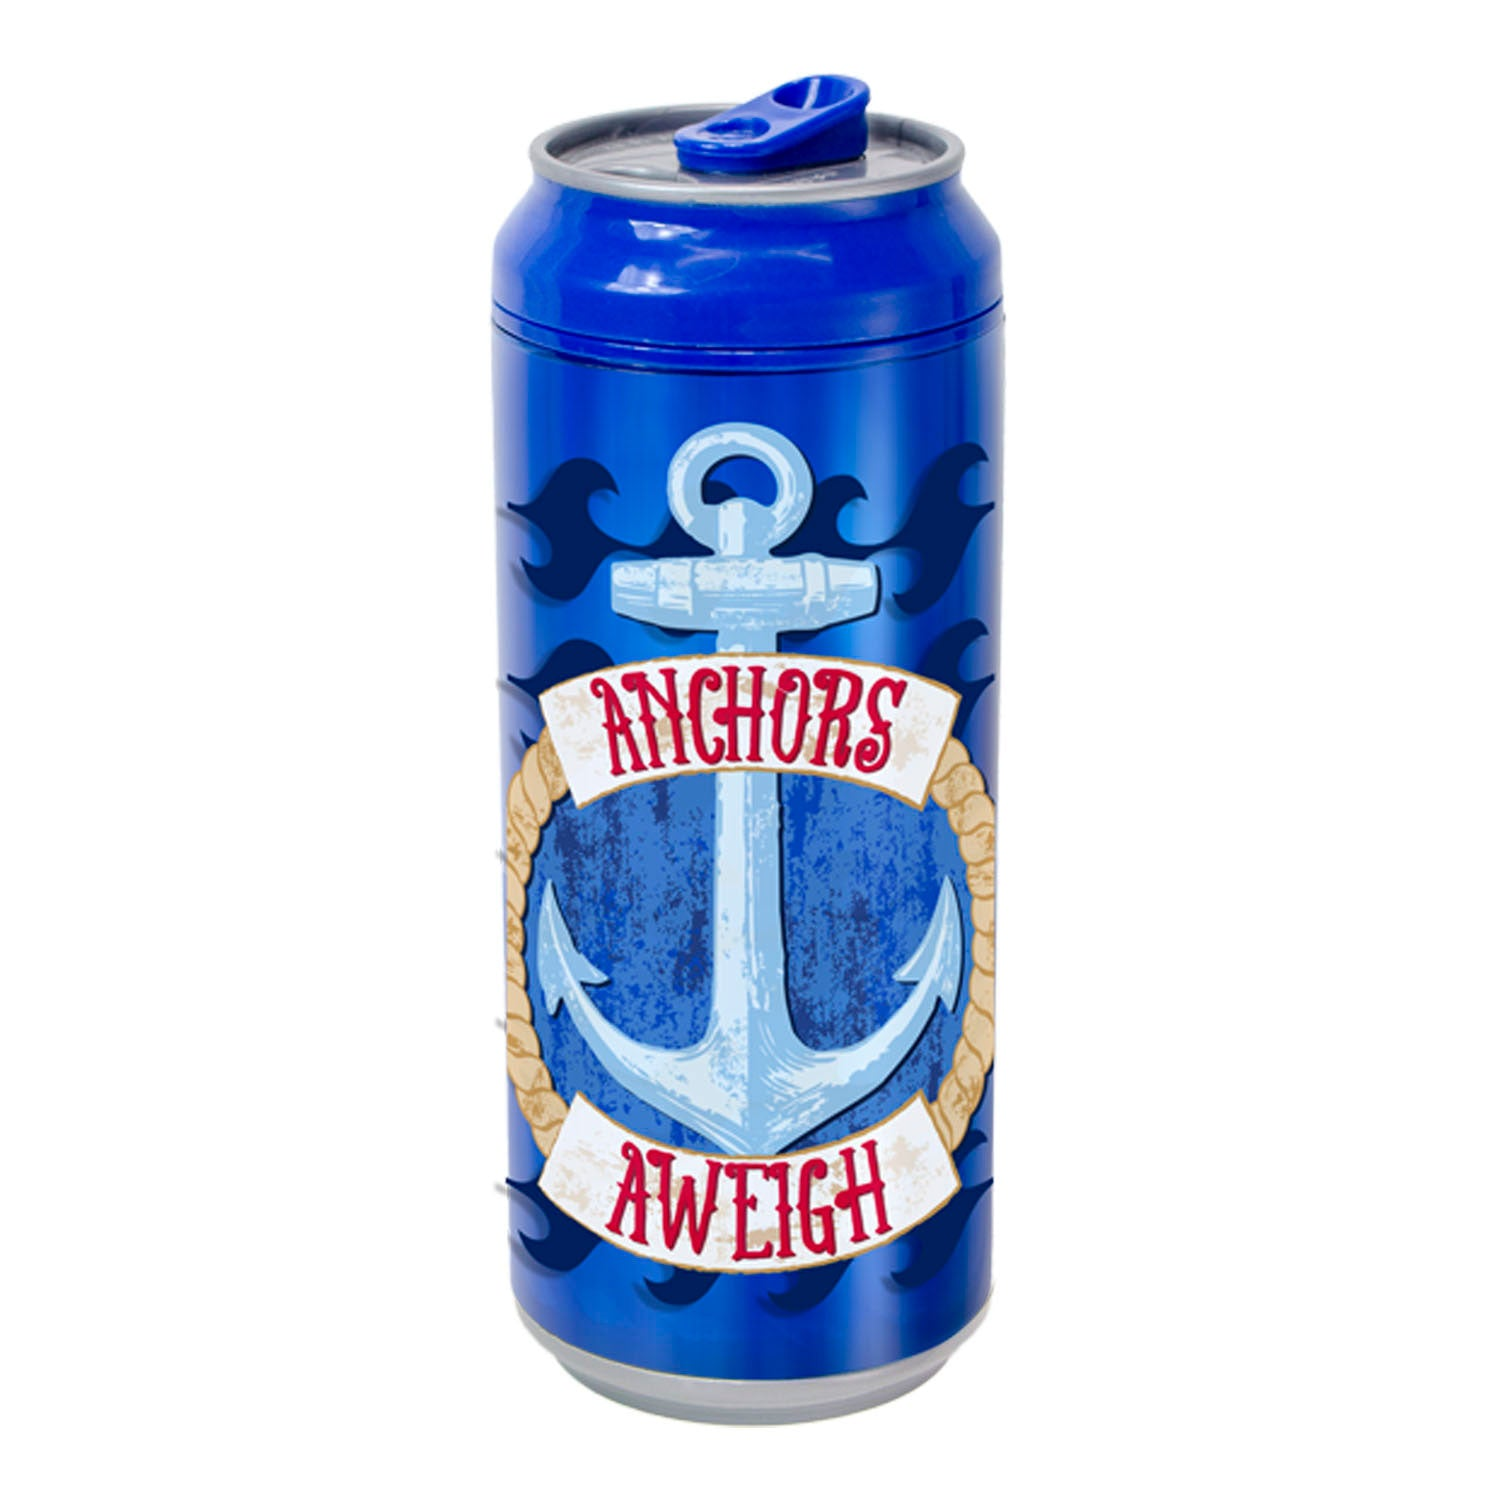 c16b46849a Dark Blue / Anchors Aweigh 16 Oz coolgearcan at Cool Gear Coolgearcans